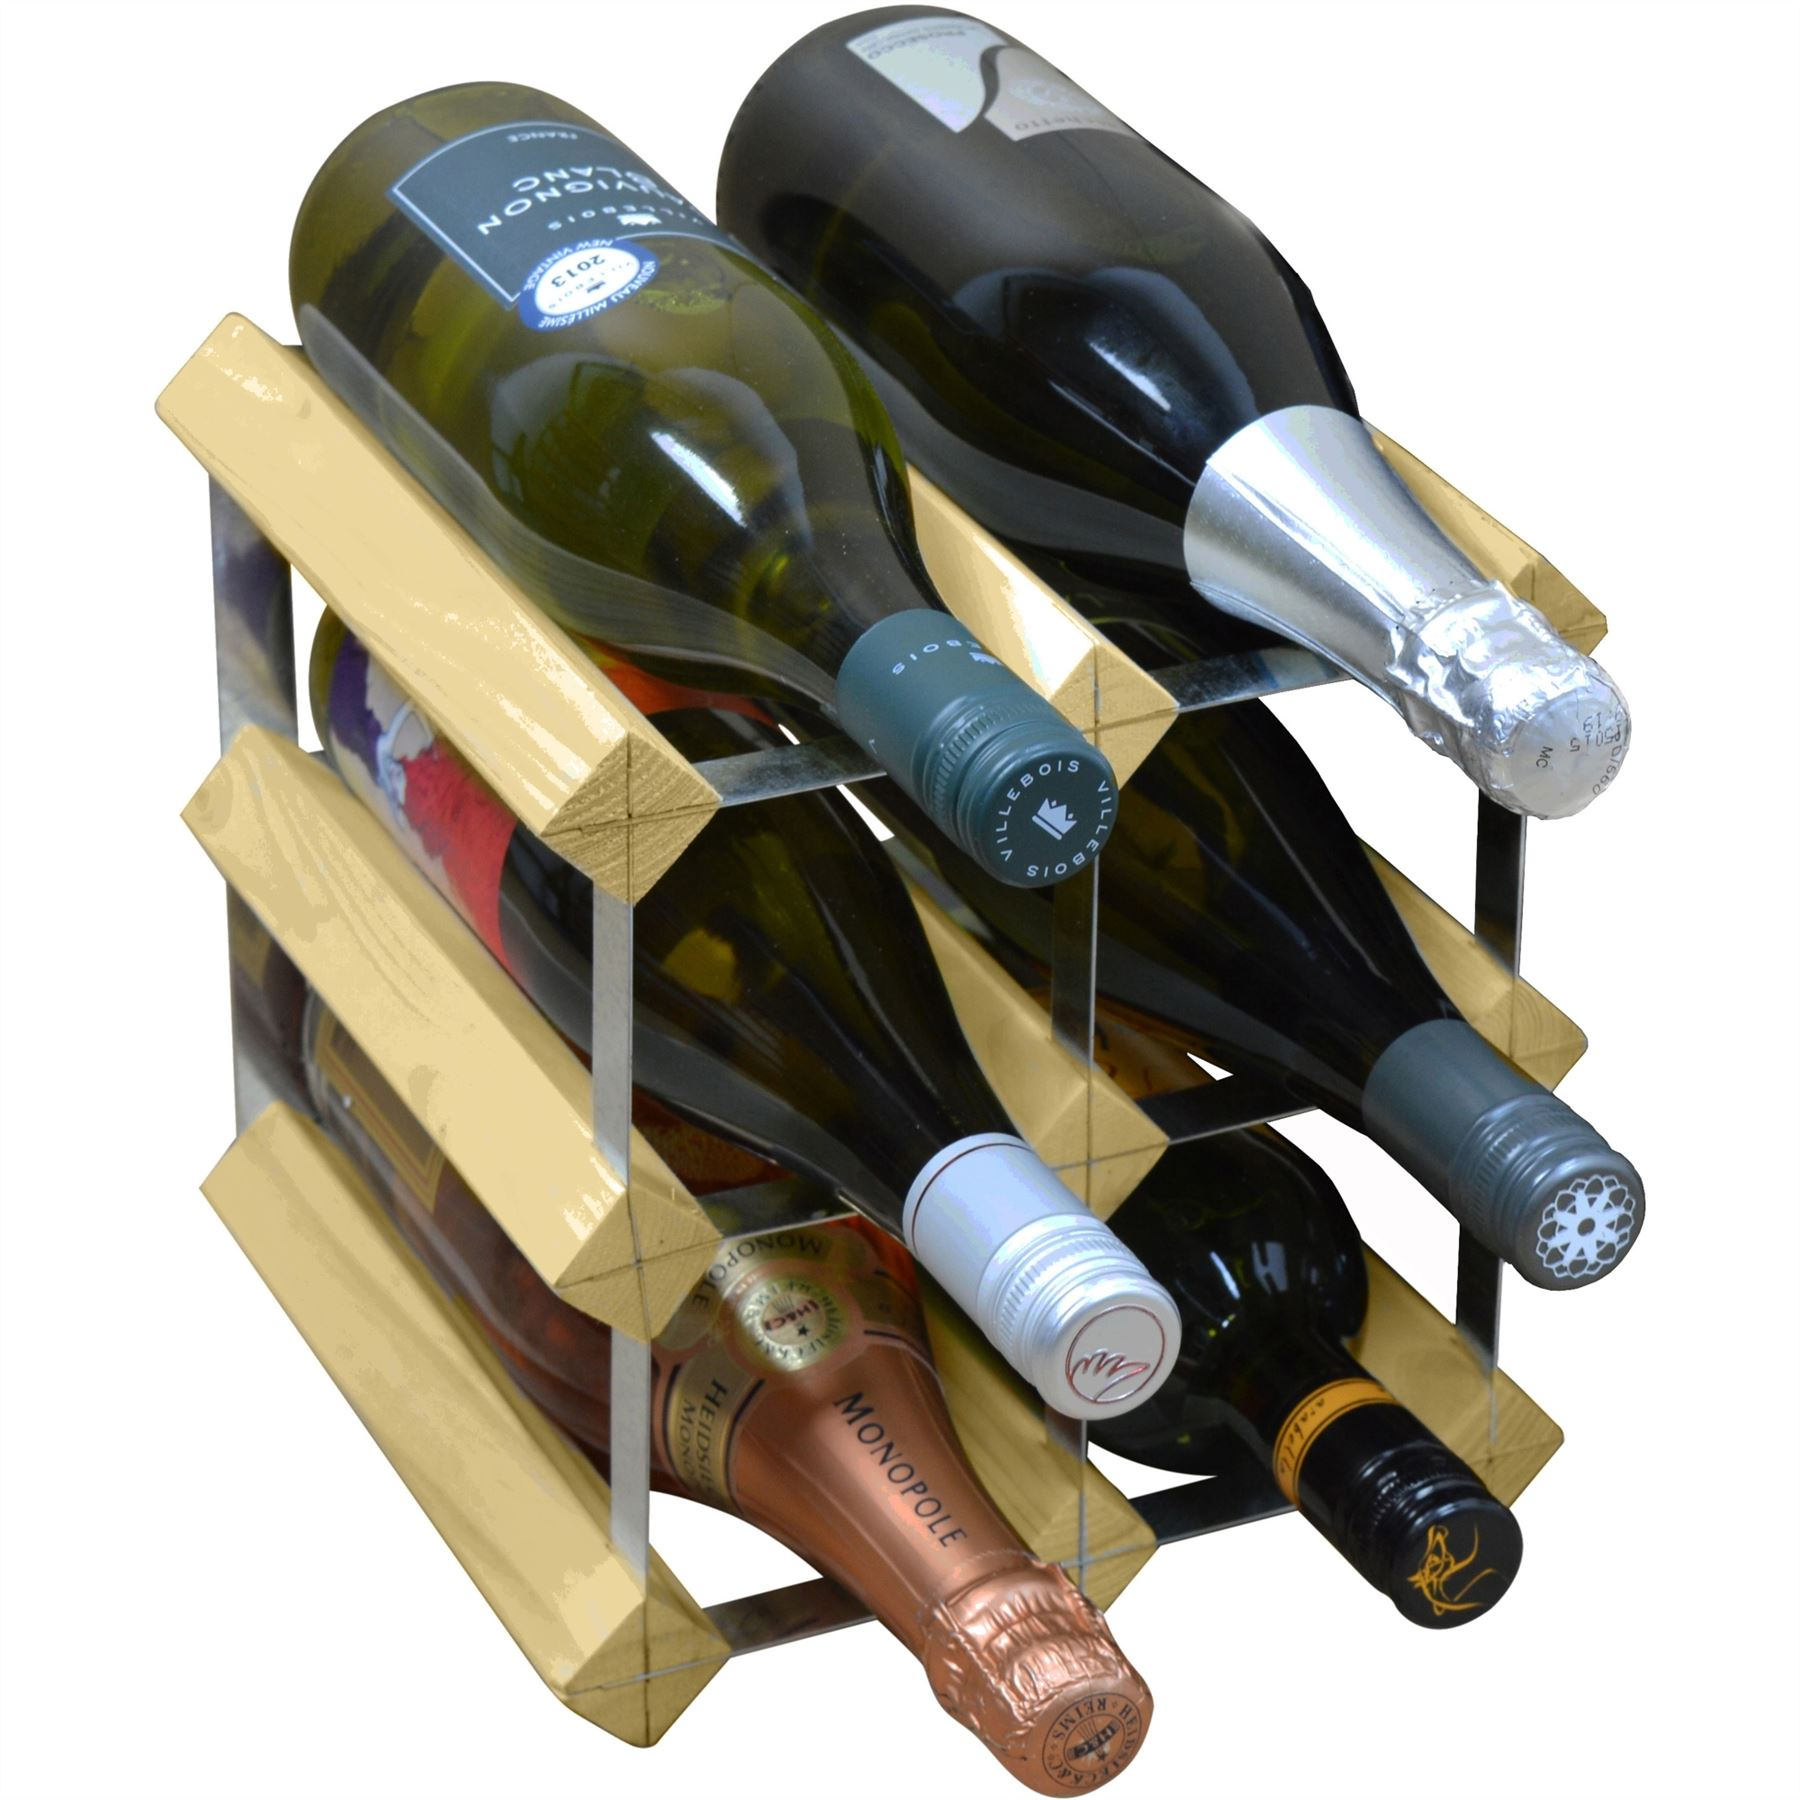 Wooden Bottle Rack Details About Wine Bottle Rack 6 Bottle Traditional Wooden Storage Assembled Light Wood